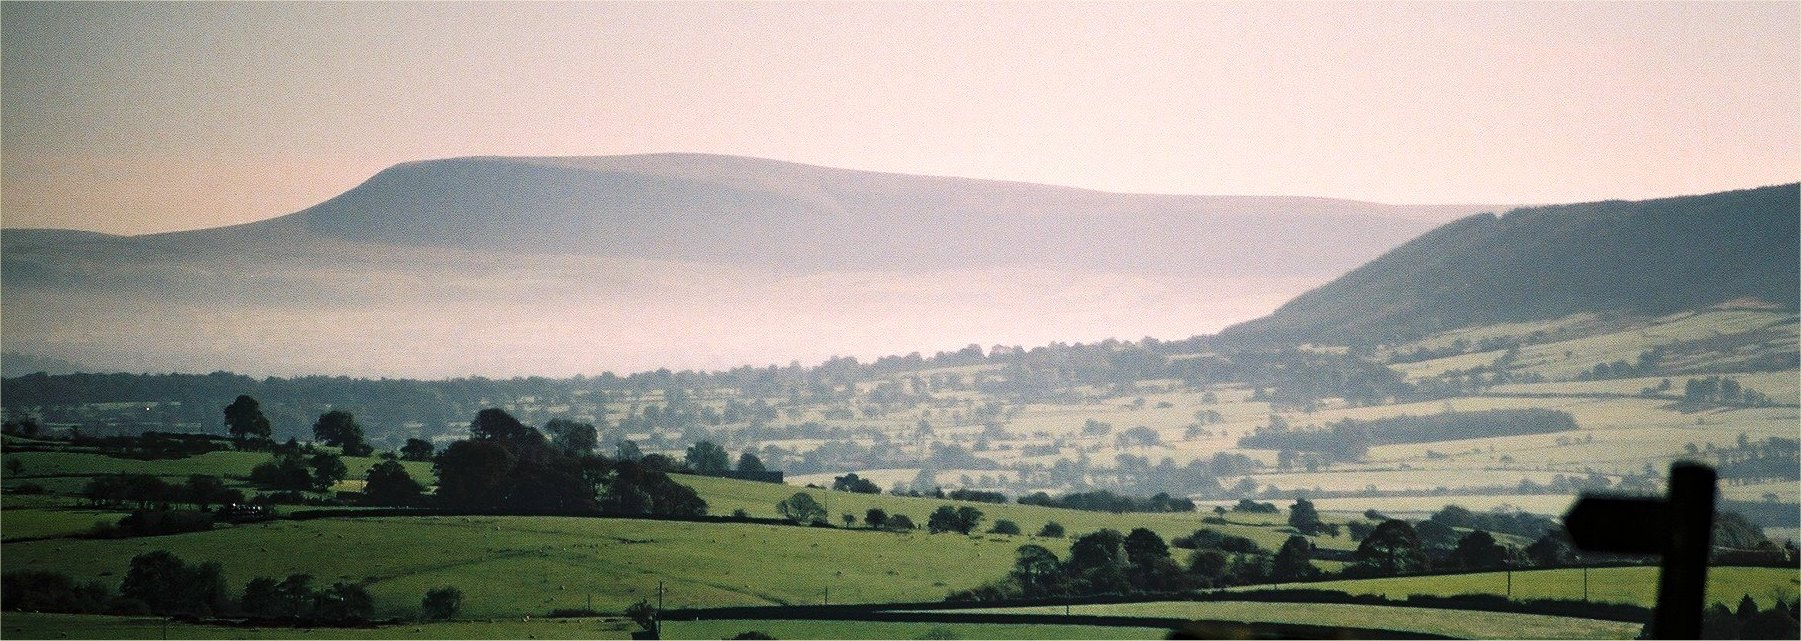 Pendle Hill above the Ribble Valley